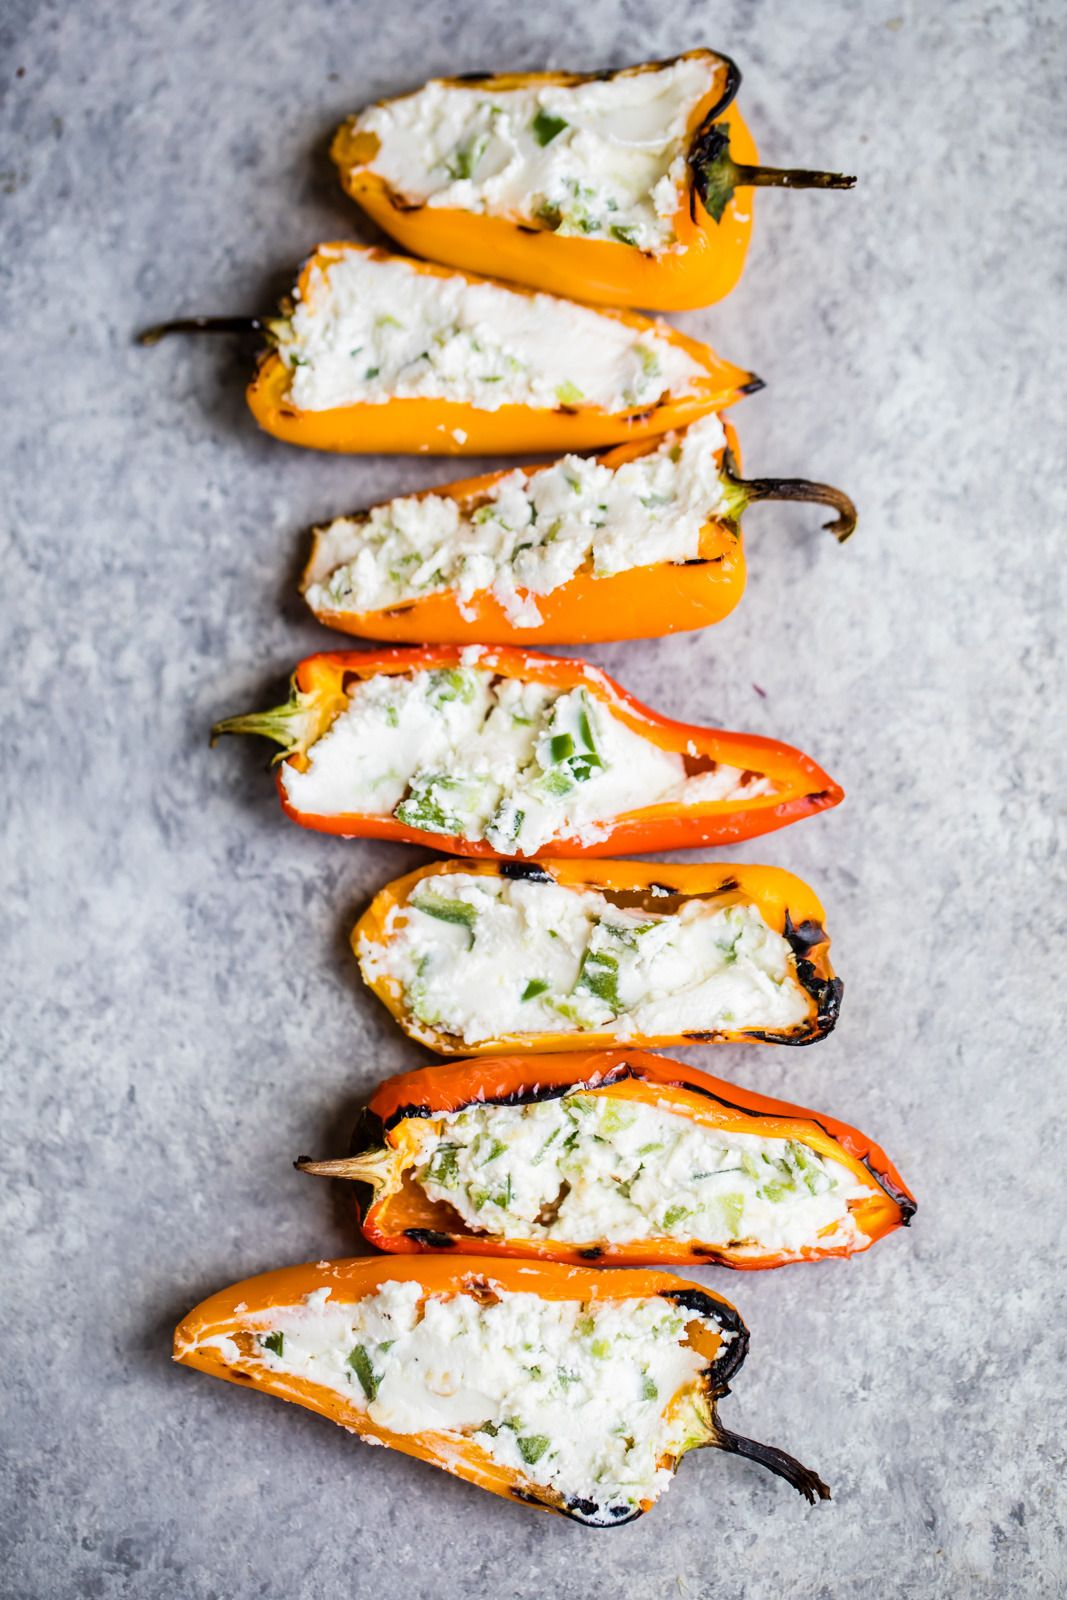 JALAPENO GOAT CHEESE GRILLED STUFFED MINI PEPPERS -